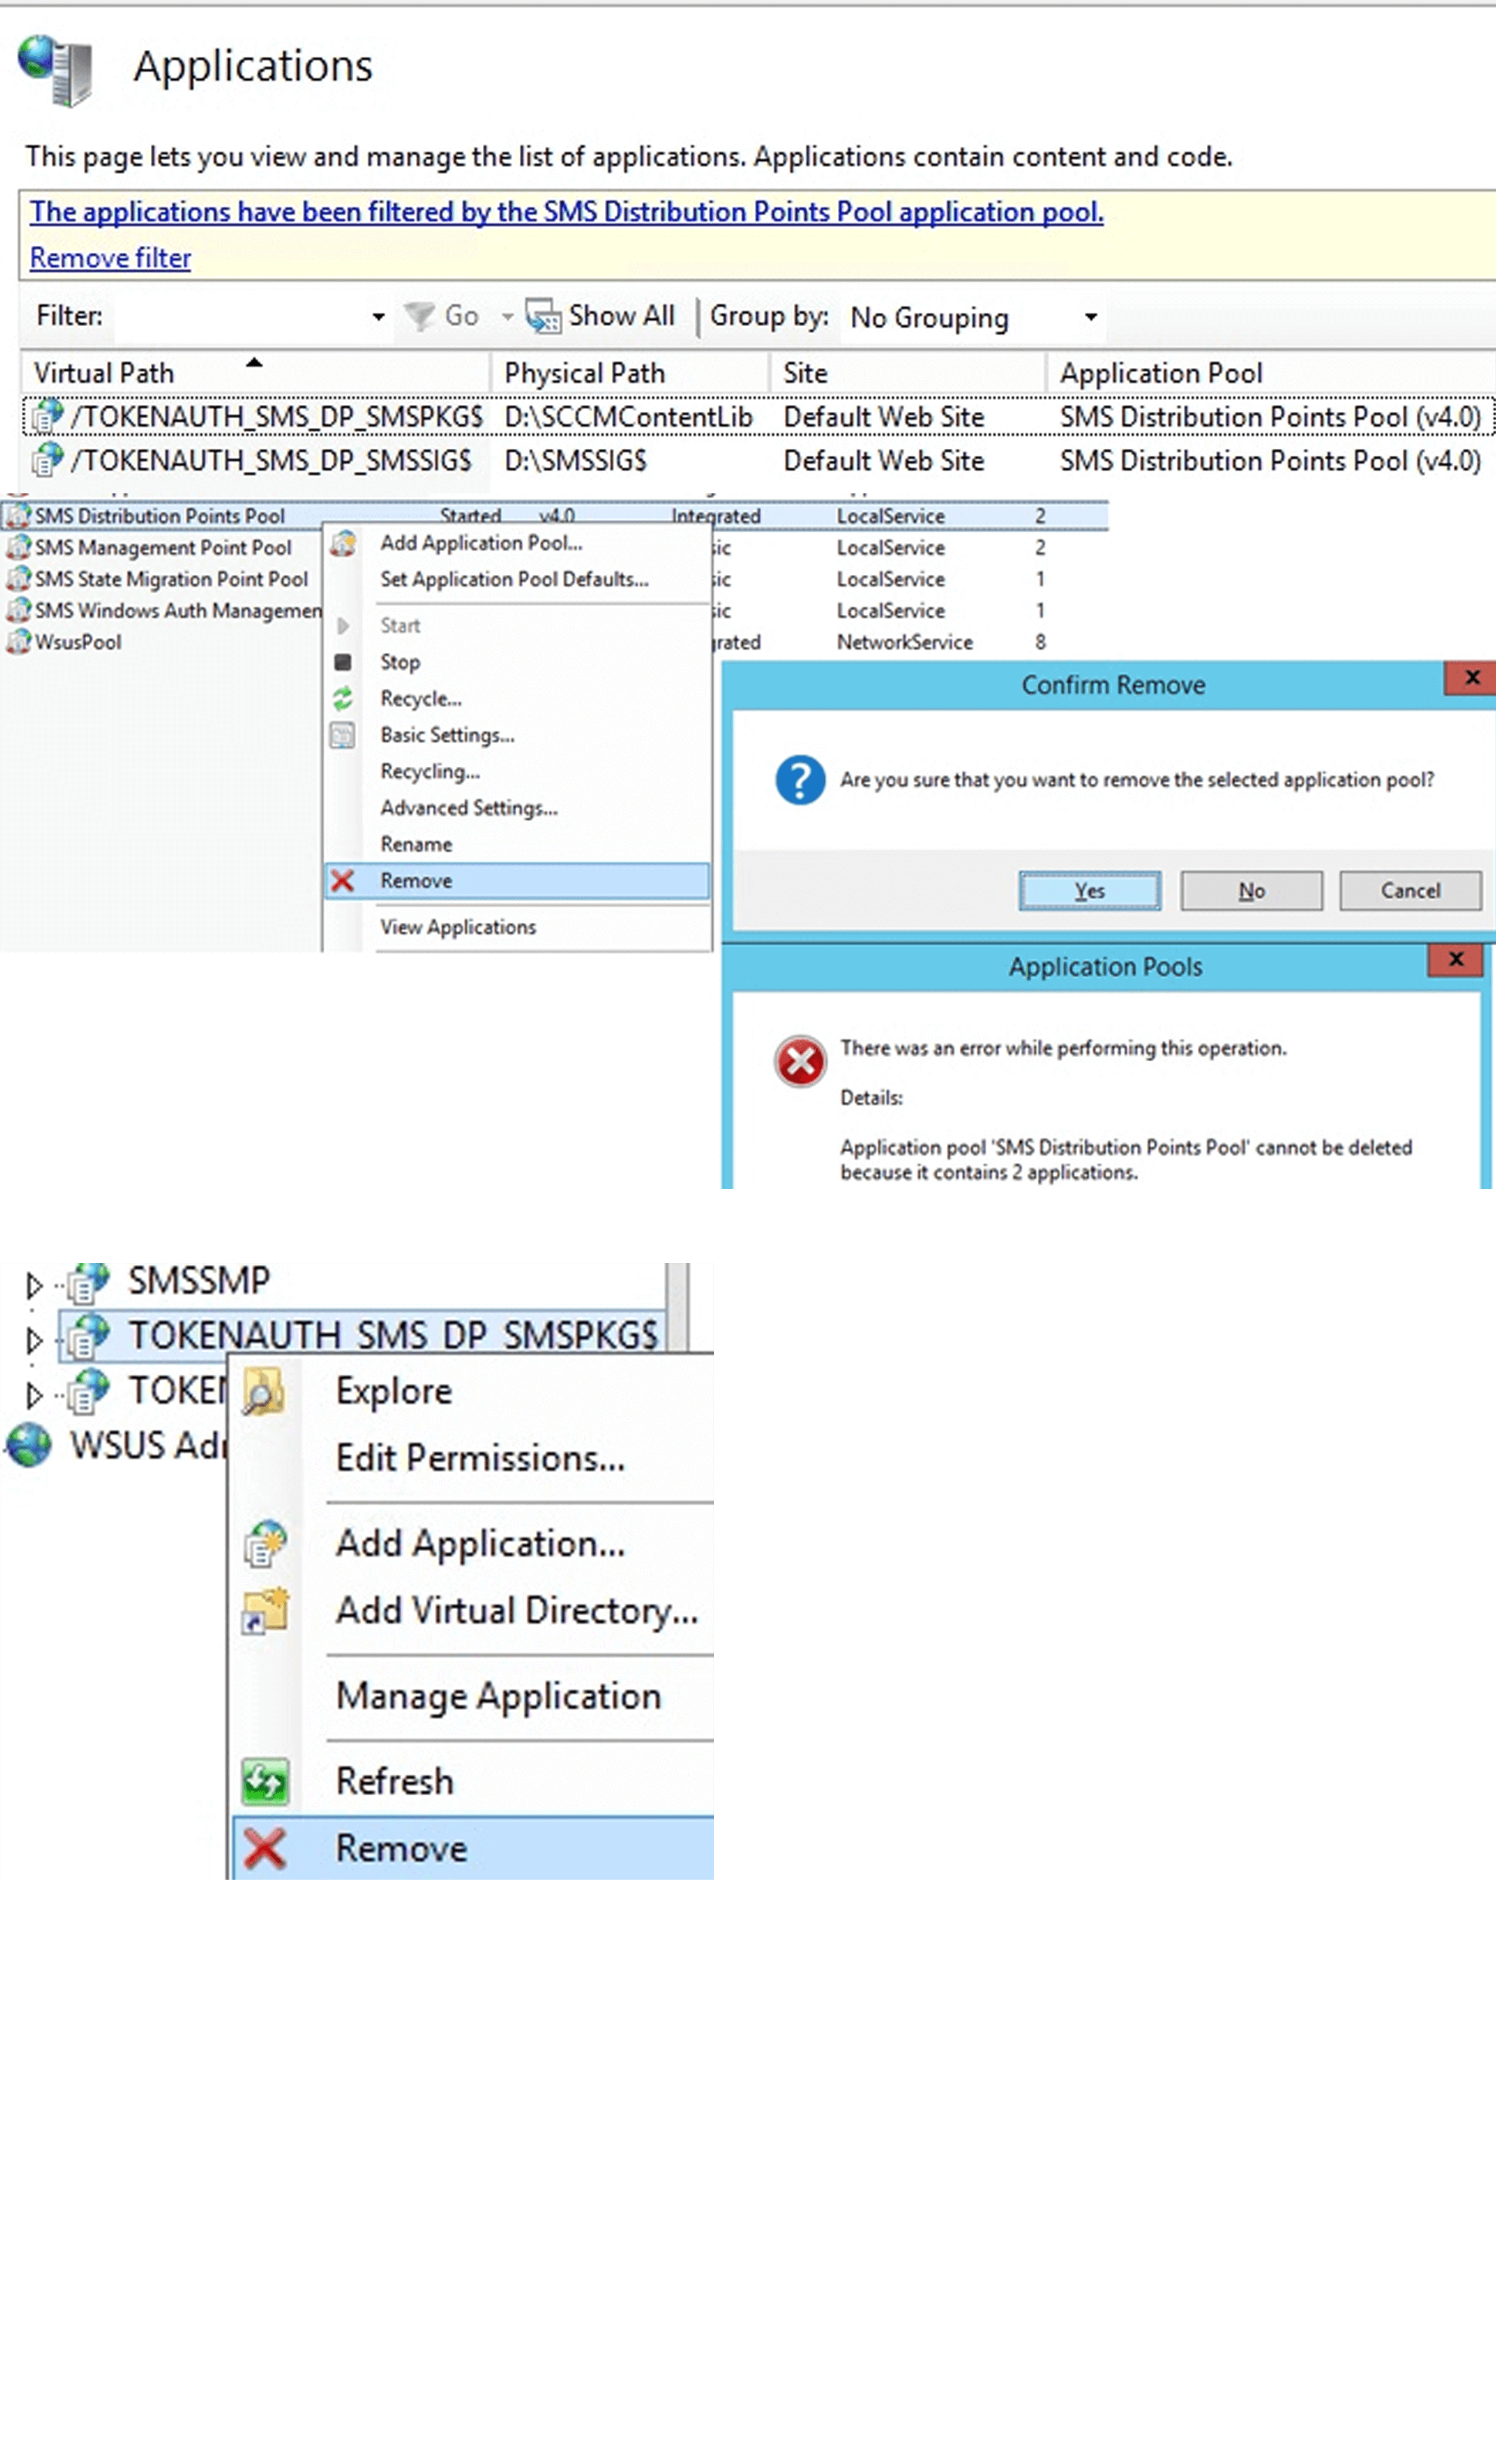 Applications SCCM